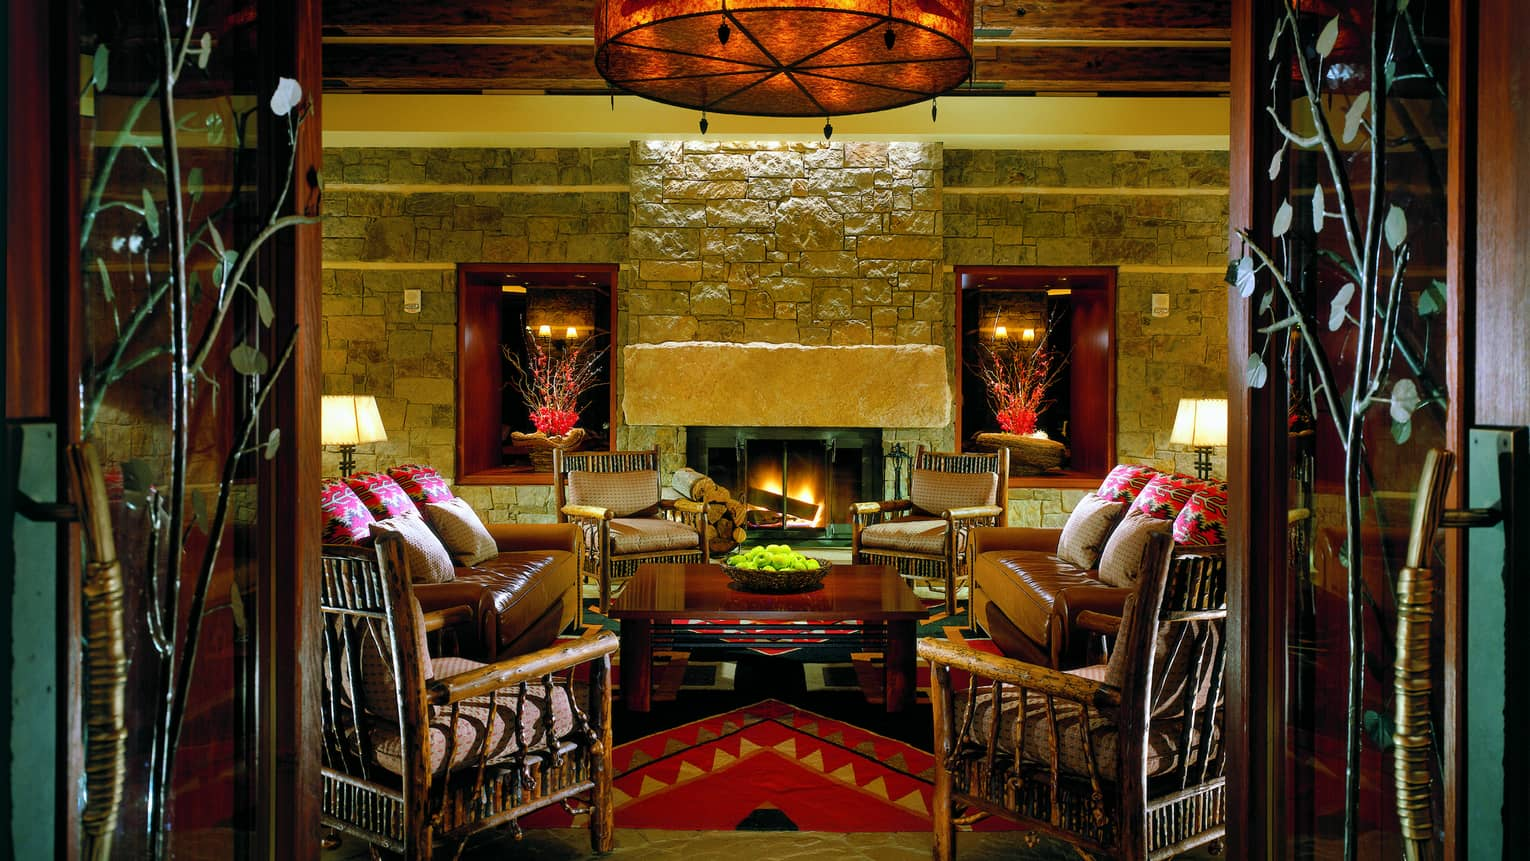 A dimly lit stone room with red accents, a circle of couches and chairs at the center